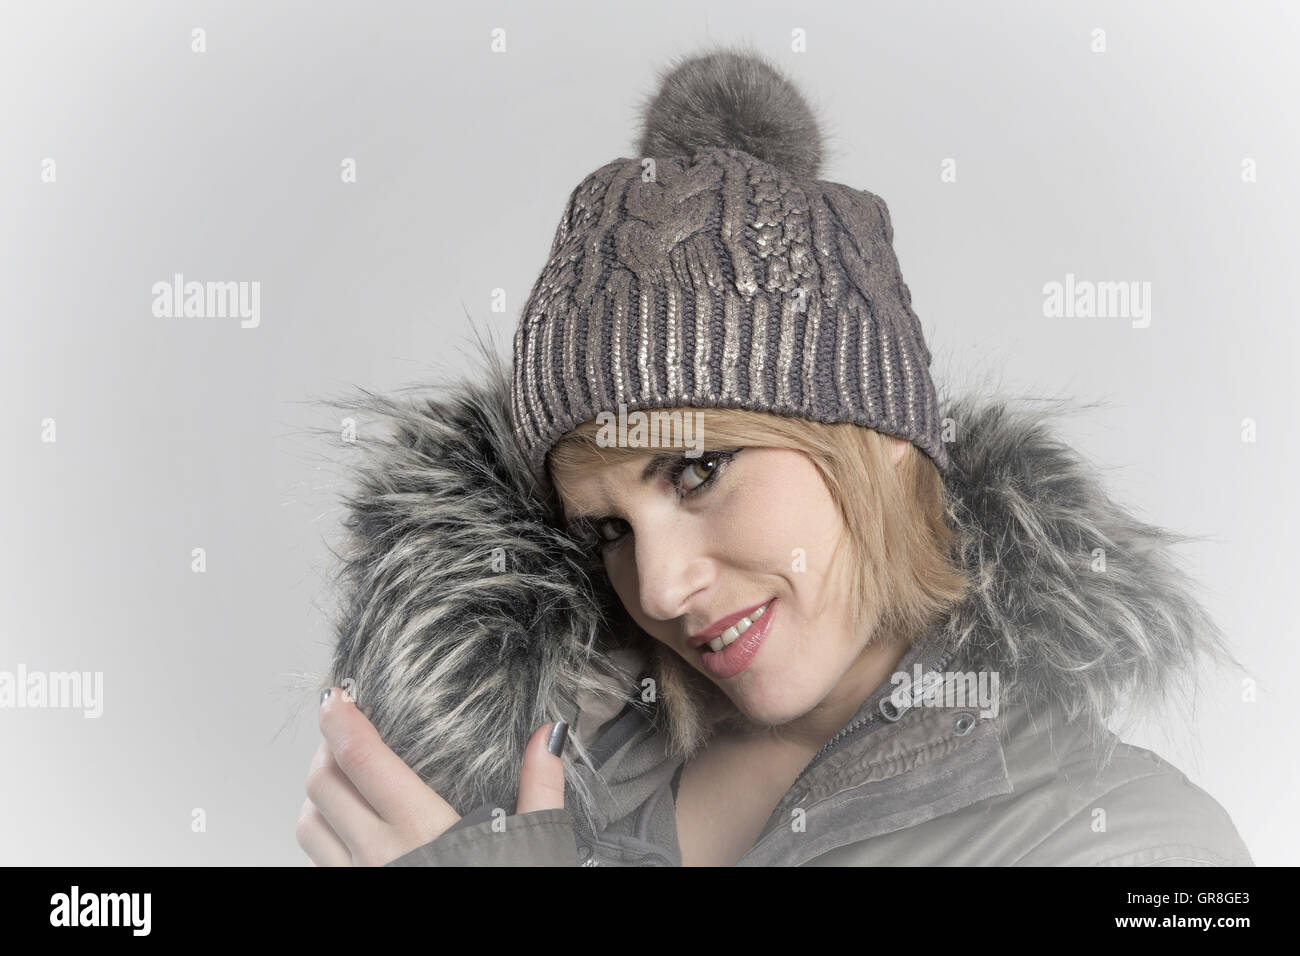 Portrait Shot Of A Young Woman With Long Blond Hair And Knit Cap - Stock Image